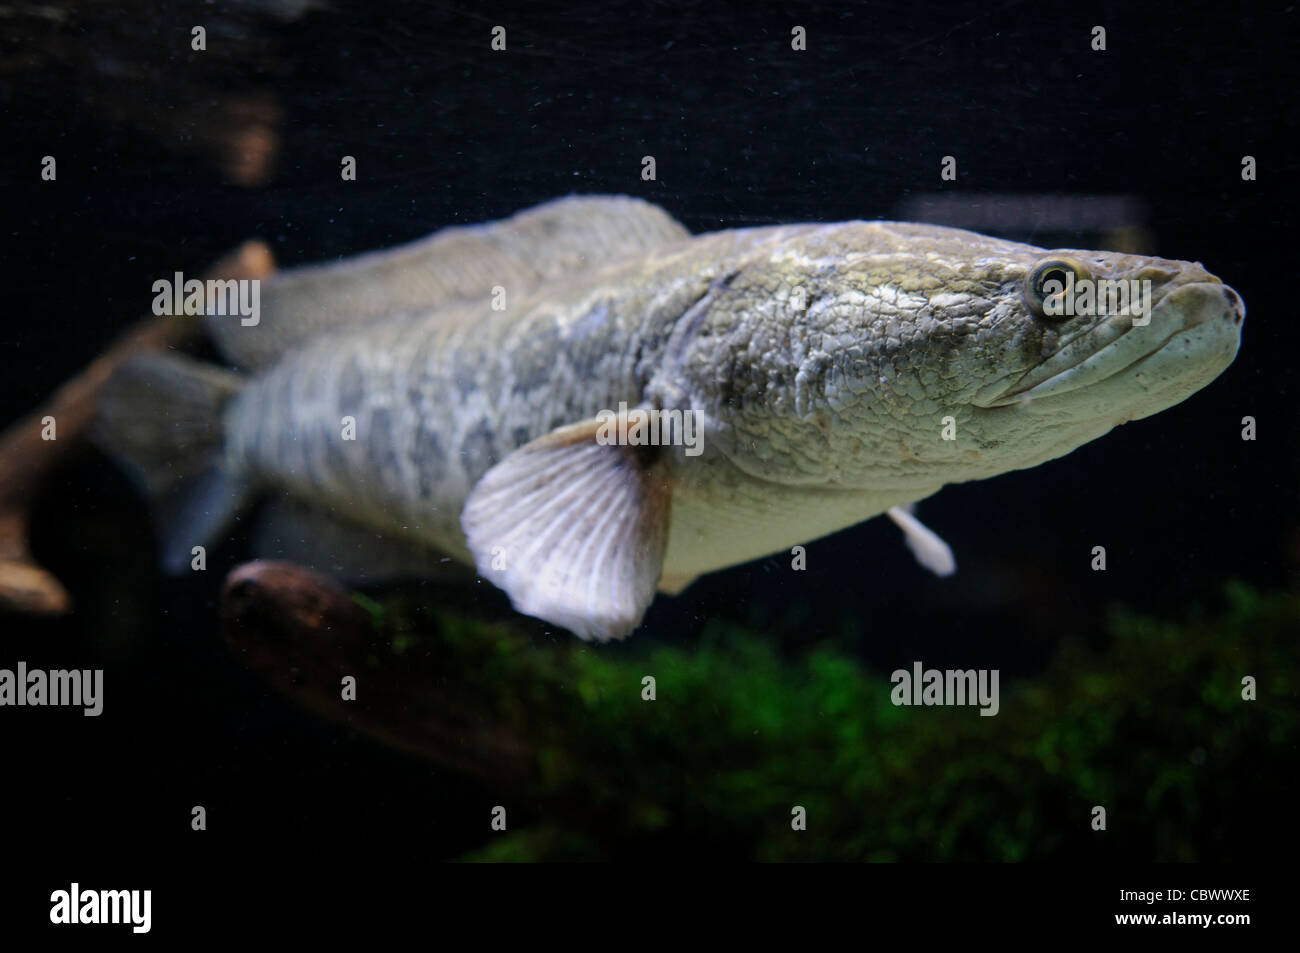 WASHINGTON DC, USA - Introduced from China, the snakehead fish has disrupted native fish and marine animals of the - Stock Image